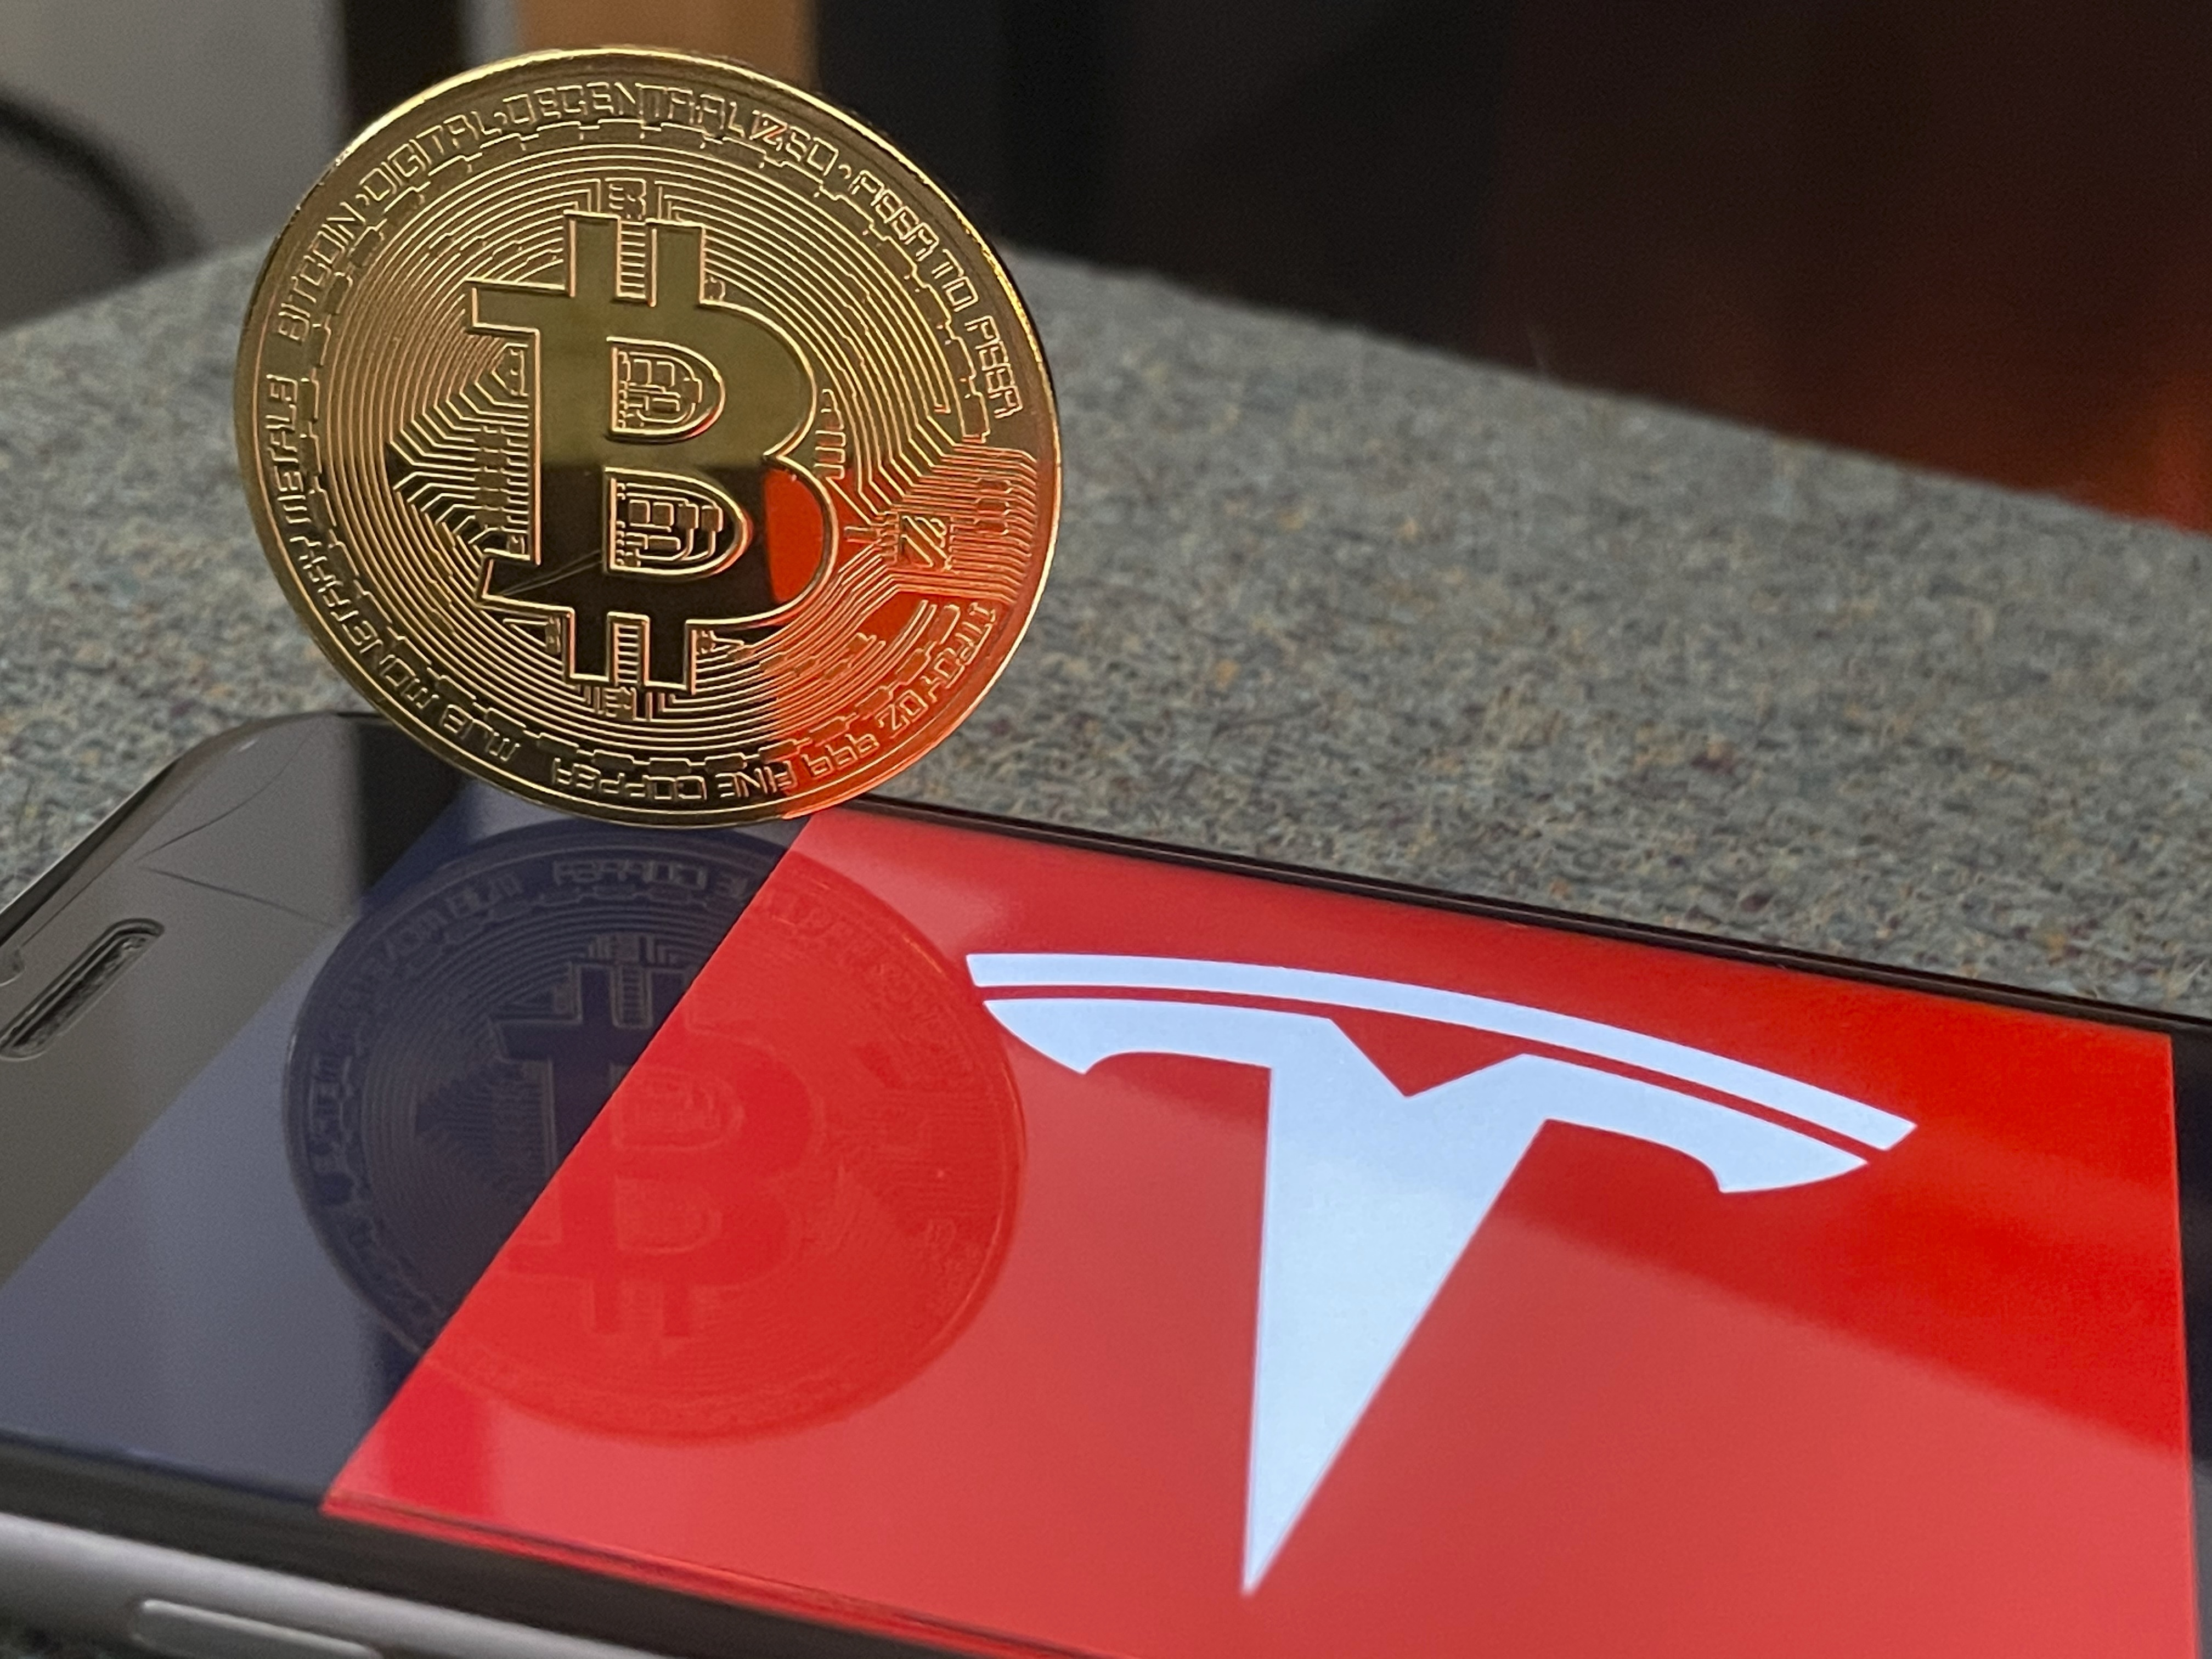 Photo by: STRF/STAR MAX/IPx 2021 2/8/21 Tesla buys $1.5 Billion in bitcoin, plans to accept it as payment. STAR MAX Photo: Tesla logo photographed off an iphone 6s.